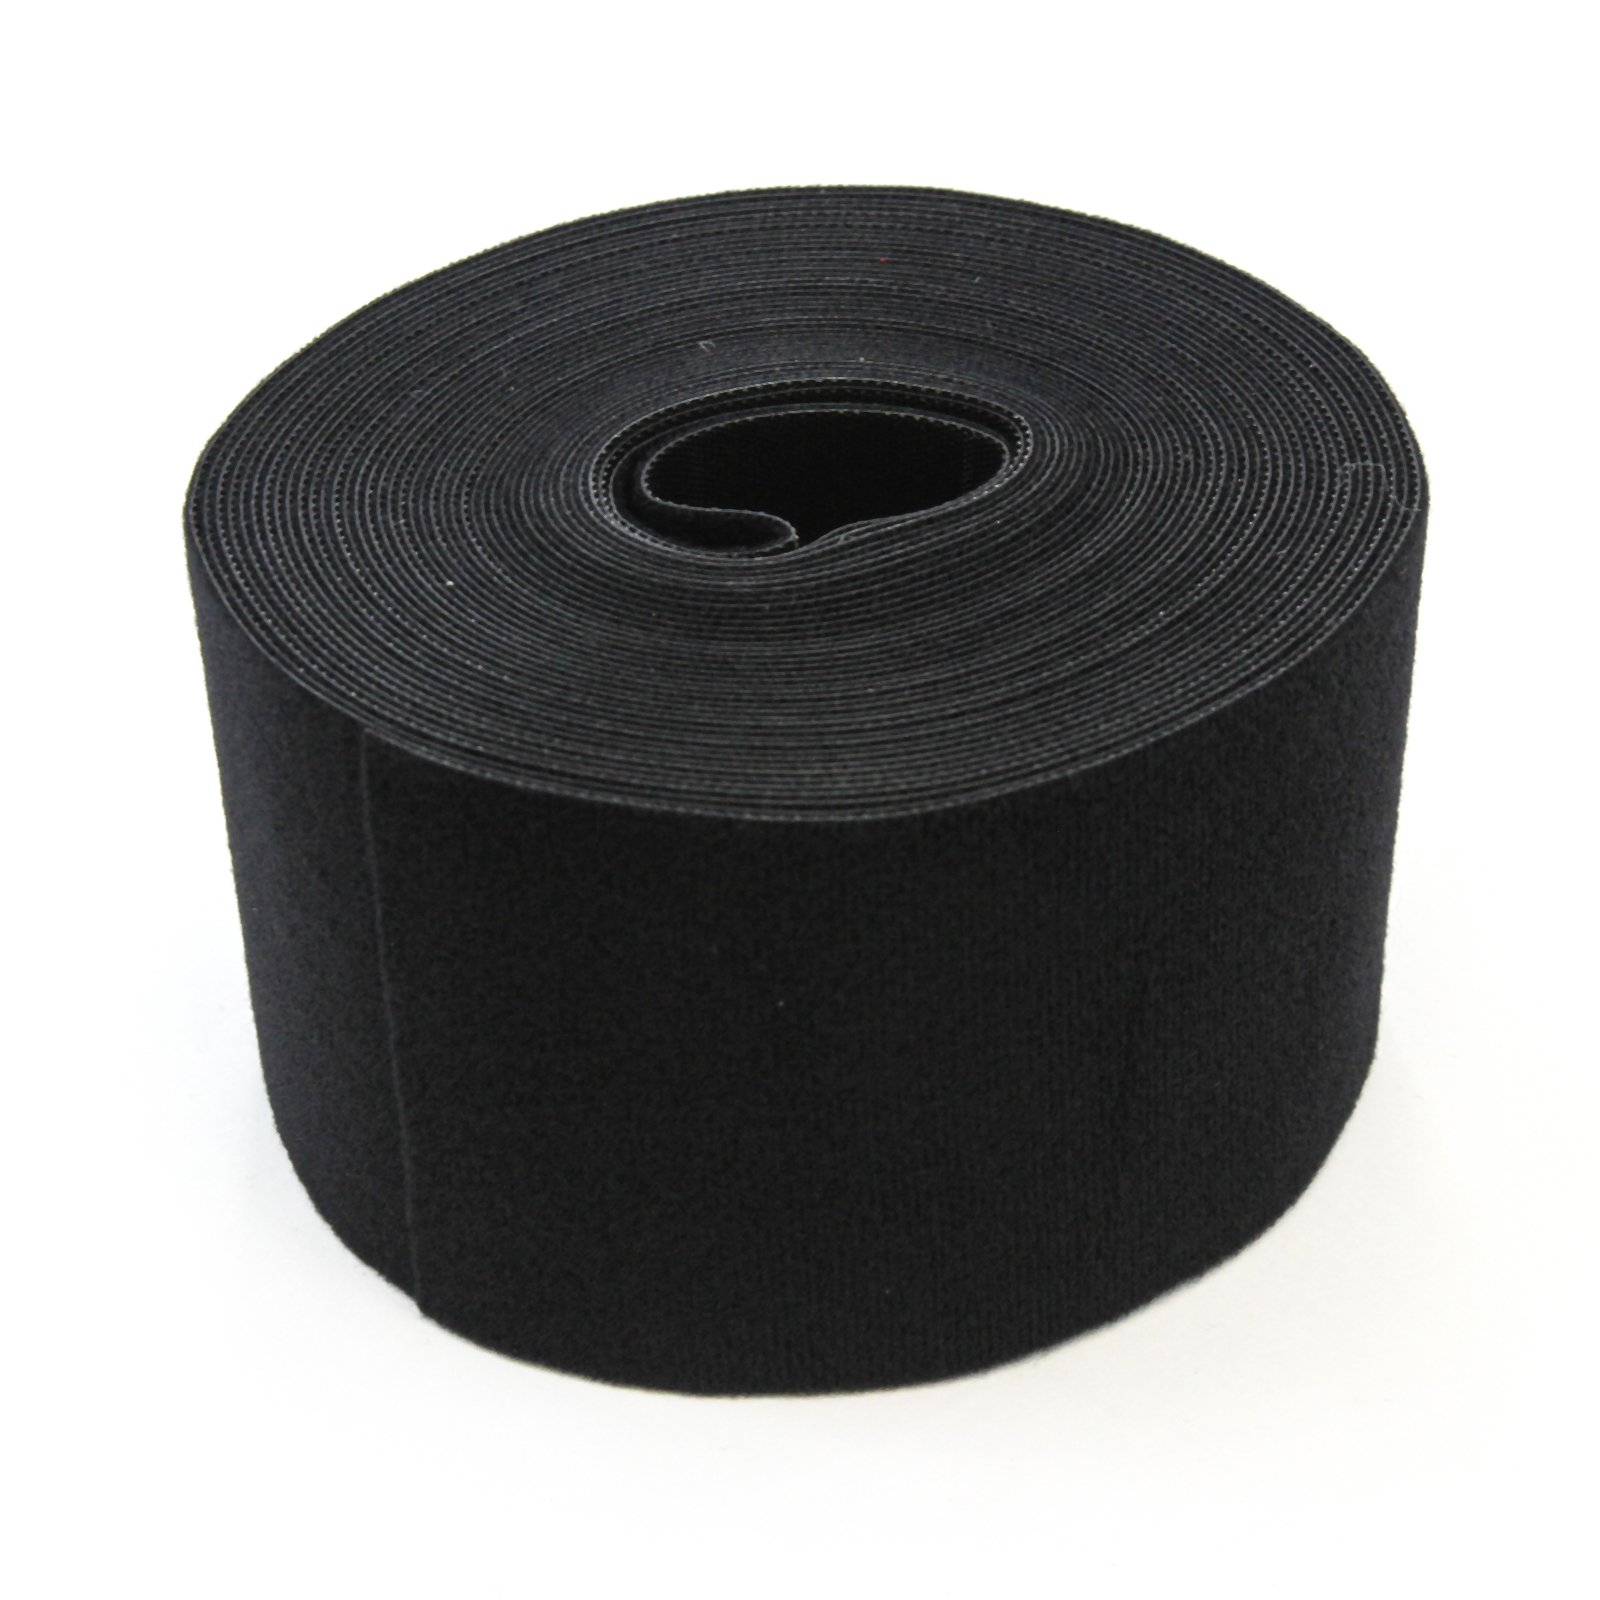 30FT REUSABLE 3 Inch Roll Hook & Loop Cable Fastening Tape Cord Wraps Straps